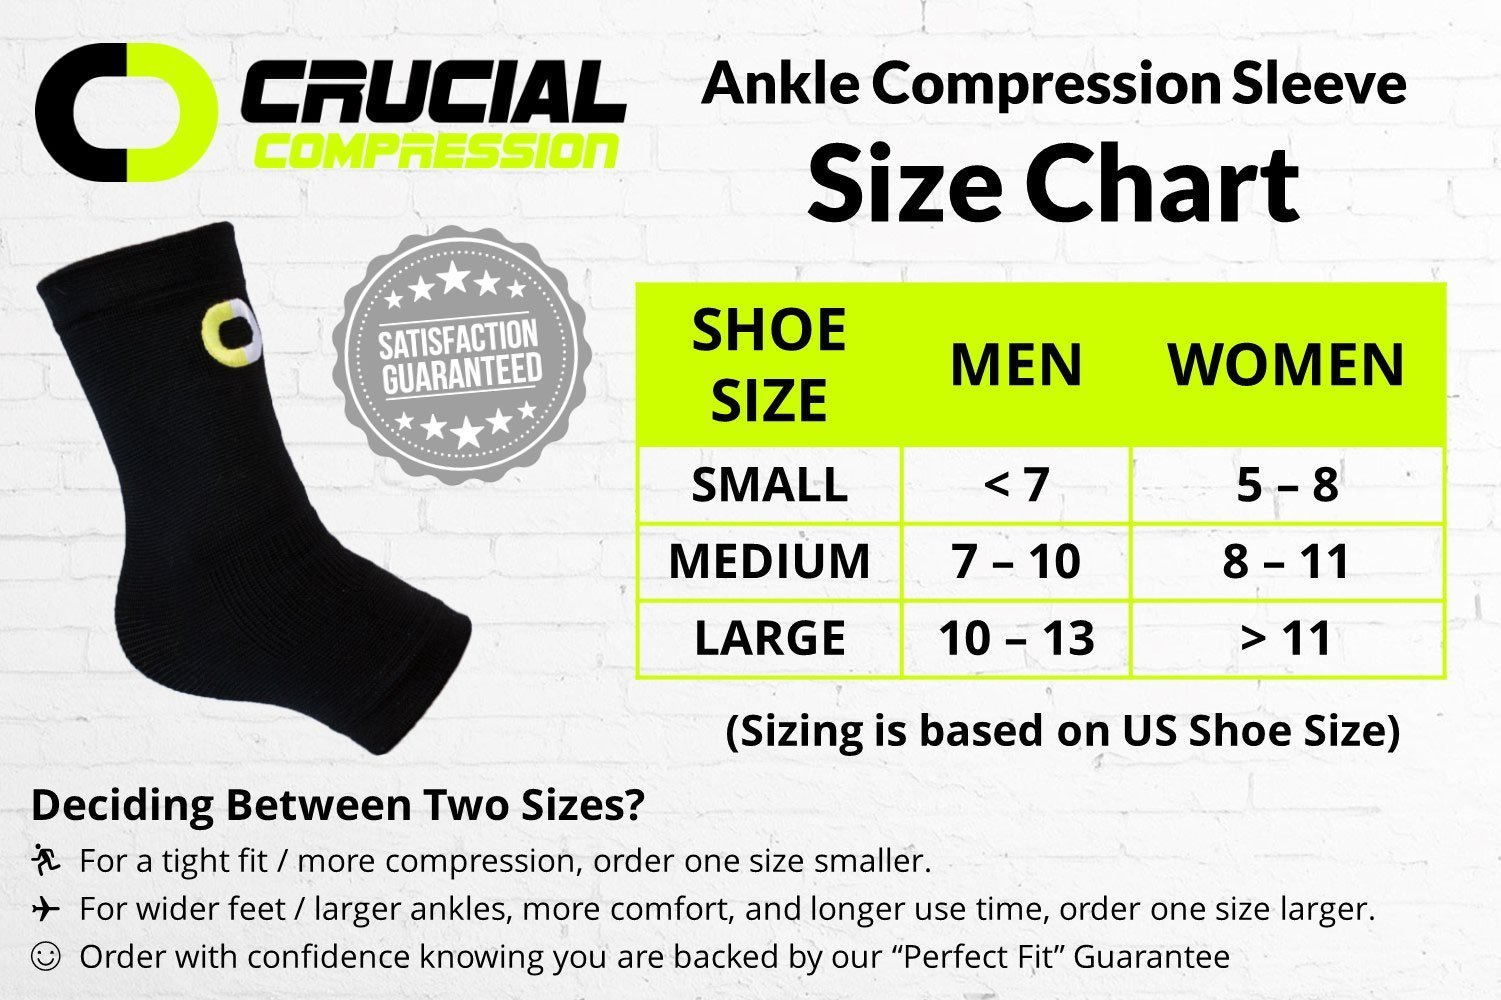 Ankle Brace Compression Sleeve for Men & Women (1 Pair) – BEST Ankle Support Braces for Pain Relief, Injury Recovery, Swelling, Sprain, Achilles Tendon Support, Heel Spur, Plantar Fasciitis Foot Sock by Crucial Compression (Image #2)